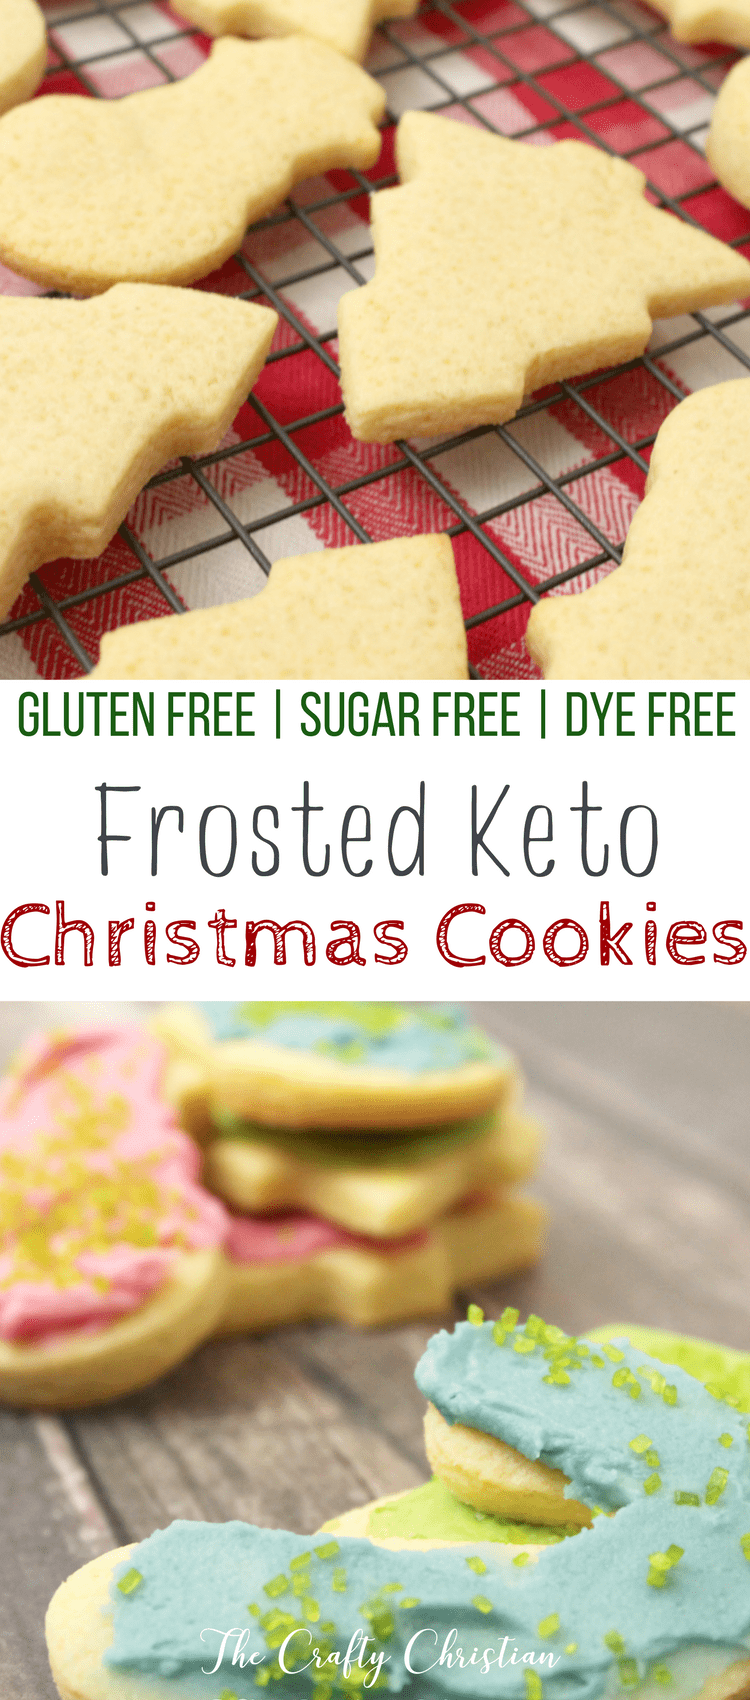 Want to indulge in a little bit of Christmas spirit without completely derailing your healing? Look no further than these Frosted Keto Christmas Cookies to hit the spot without making you hit a wall! #ketocookies #ketodessert #ketochristmas #glutenfree #paleo